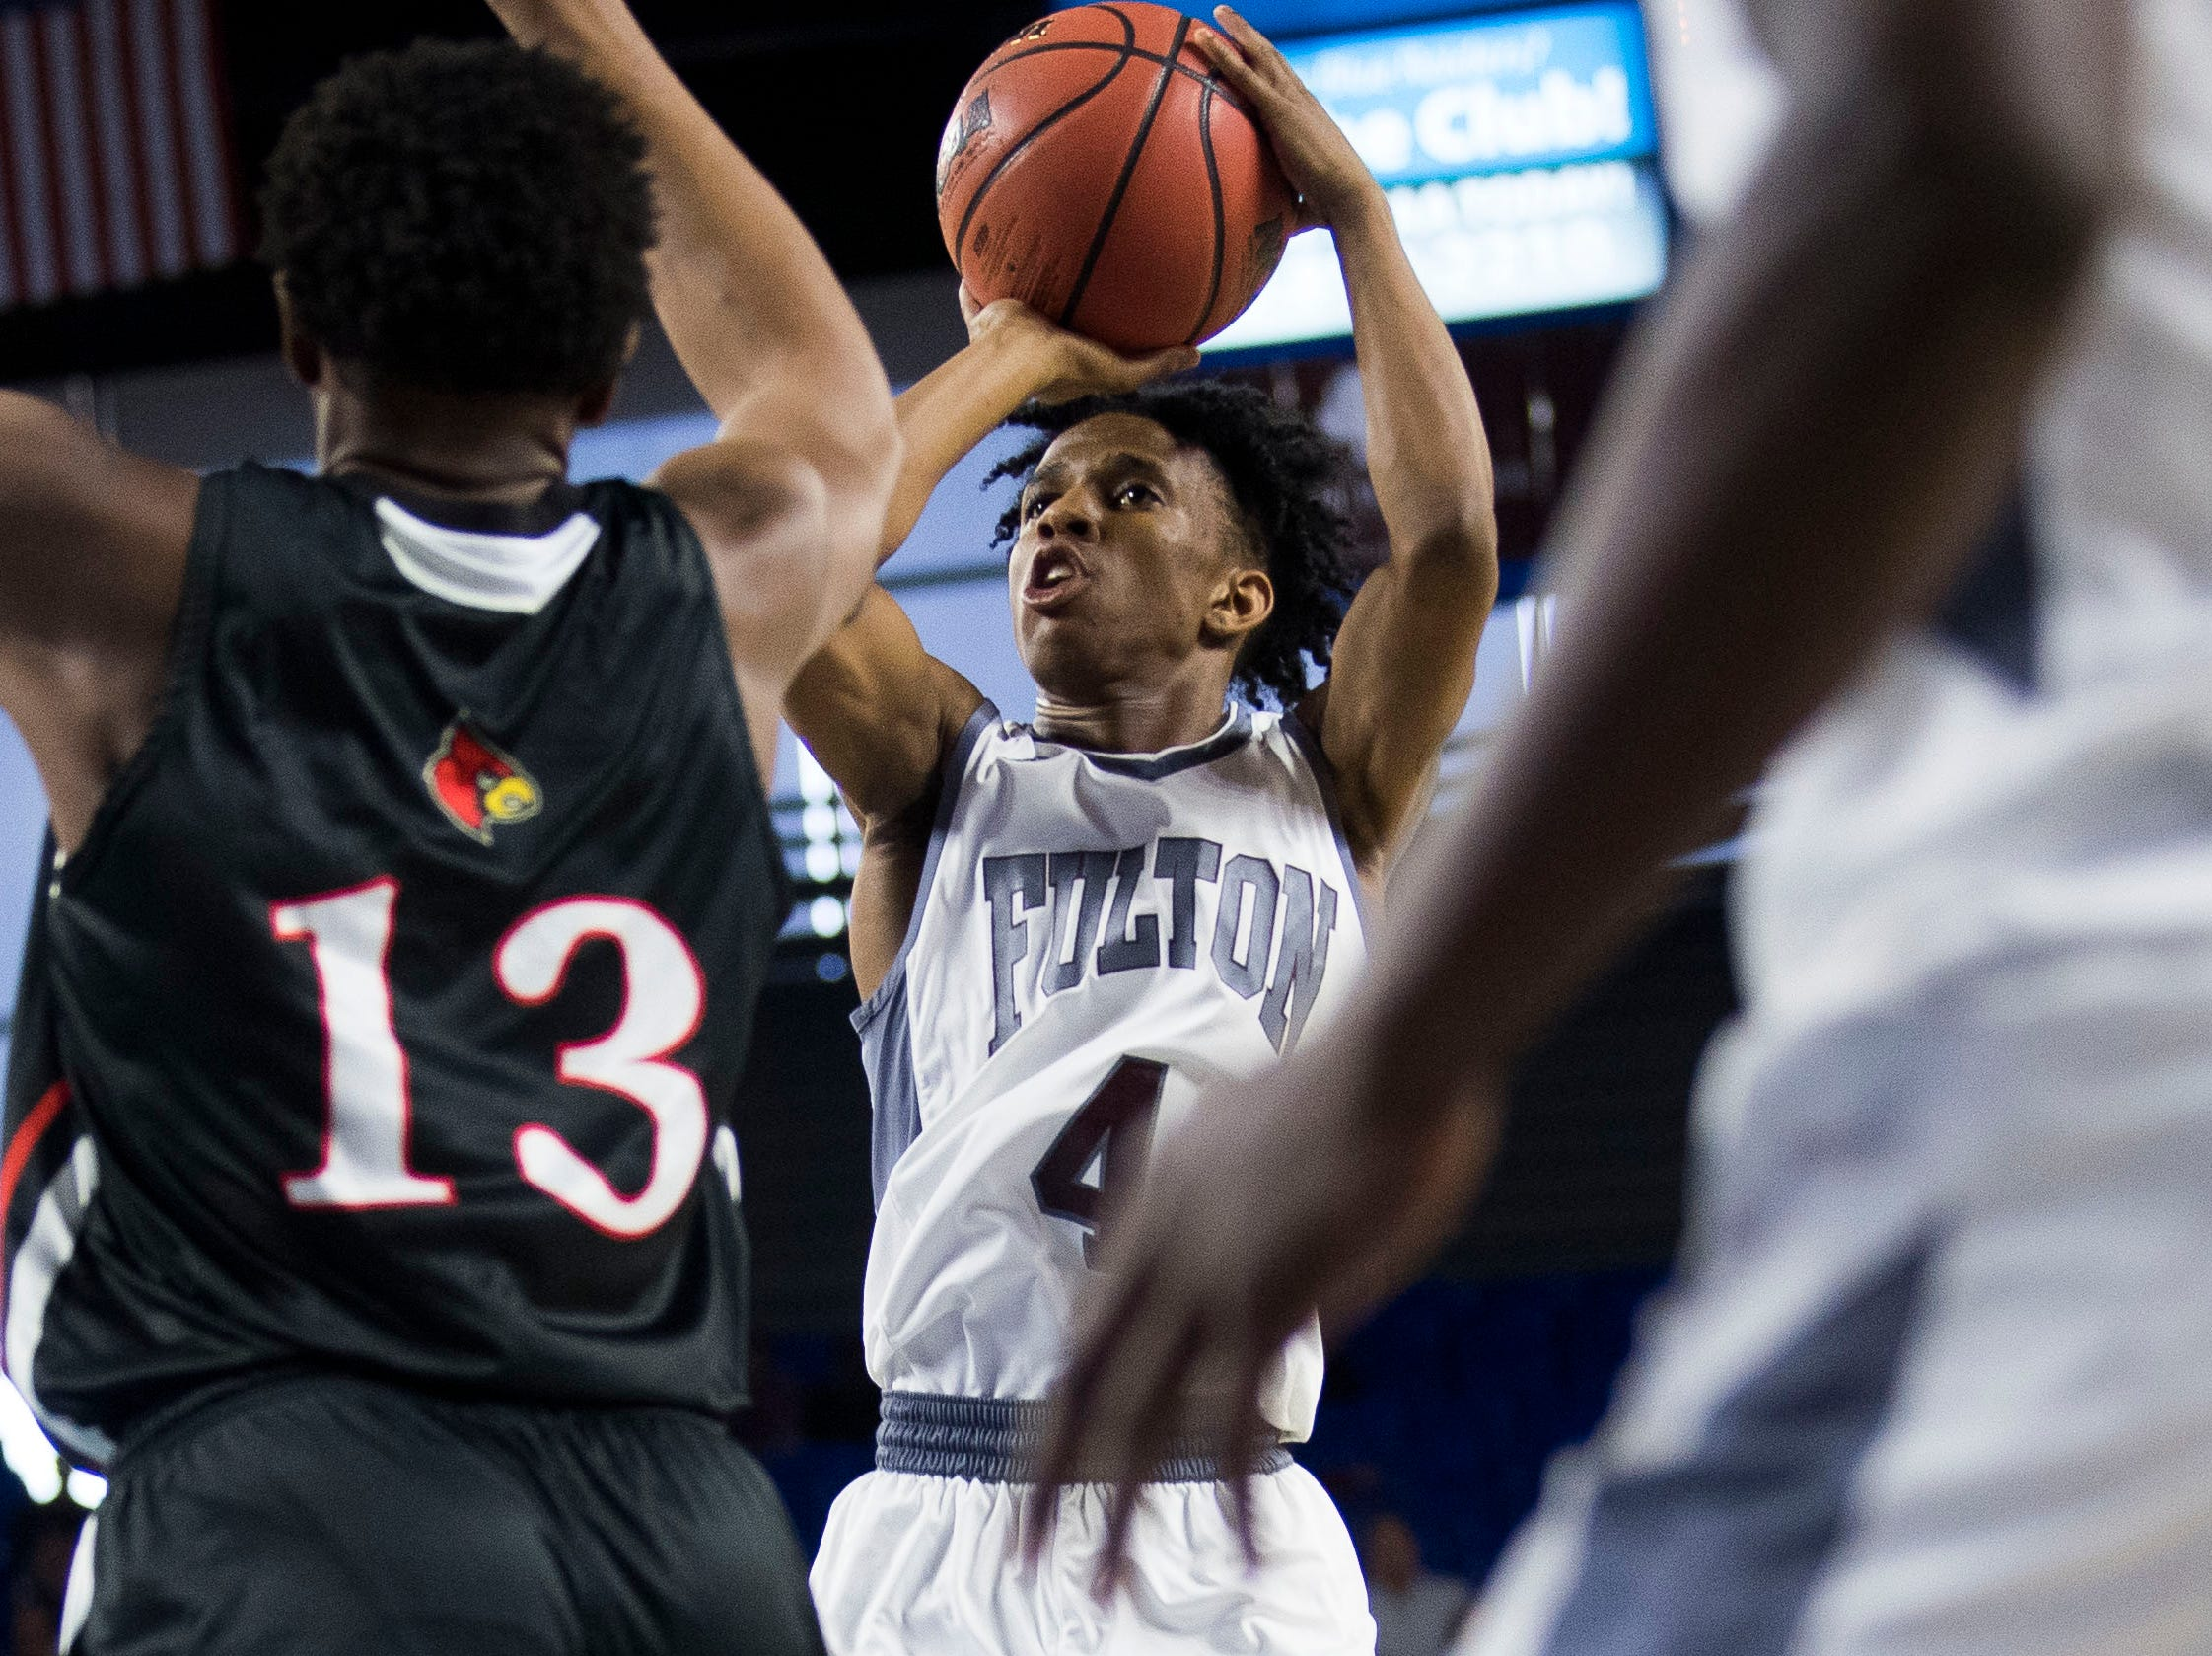 Fulton's Edward Lacy (4) takes a shot during a TSSAA AA state championship game between Wooddale and Fulton at the Murphy Center in Murfreesboro, Saturday, March 16, 2019.